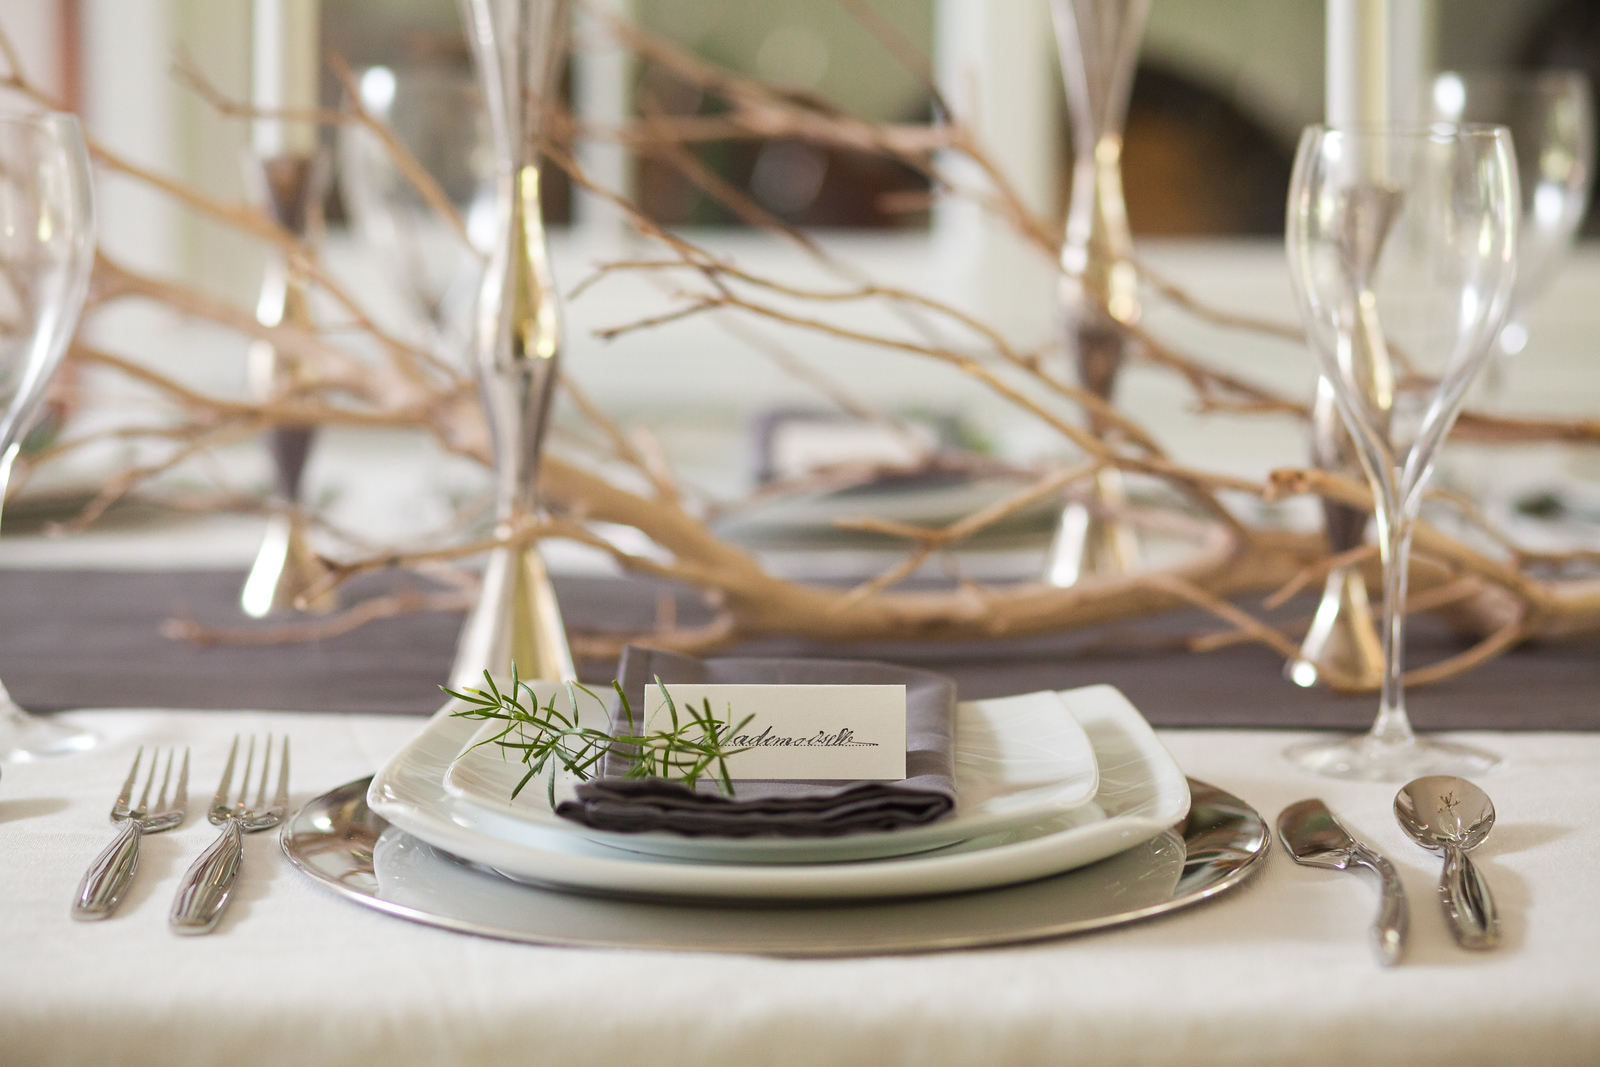 Place Setting using a stainless charger and white plates